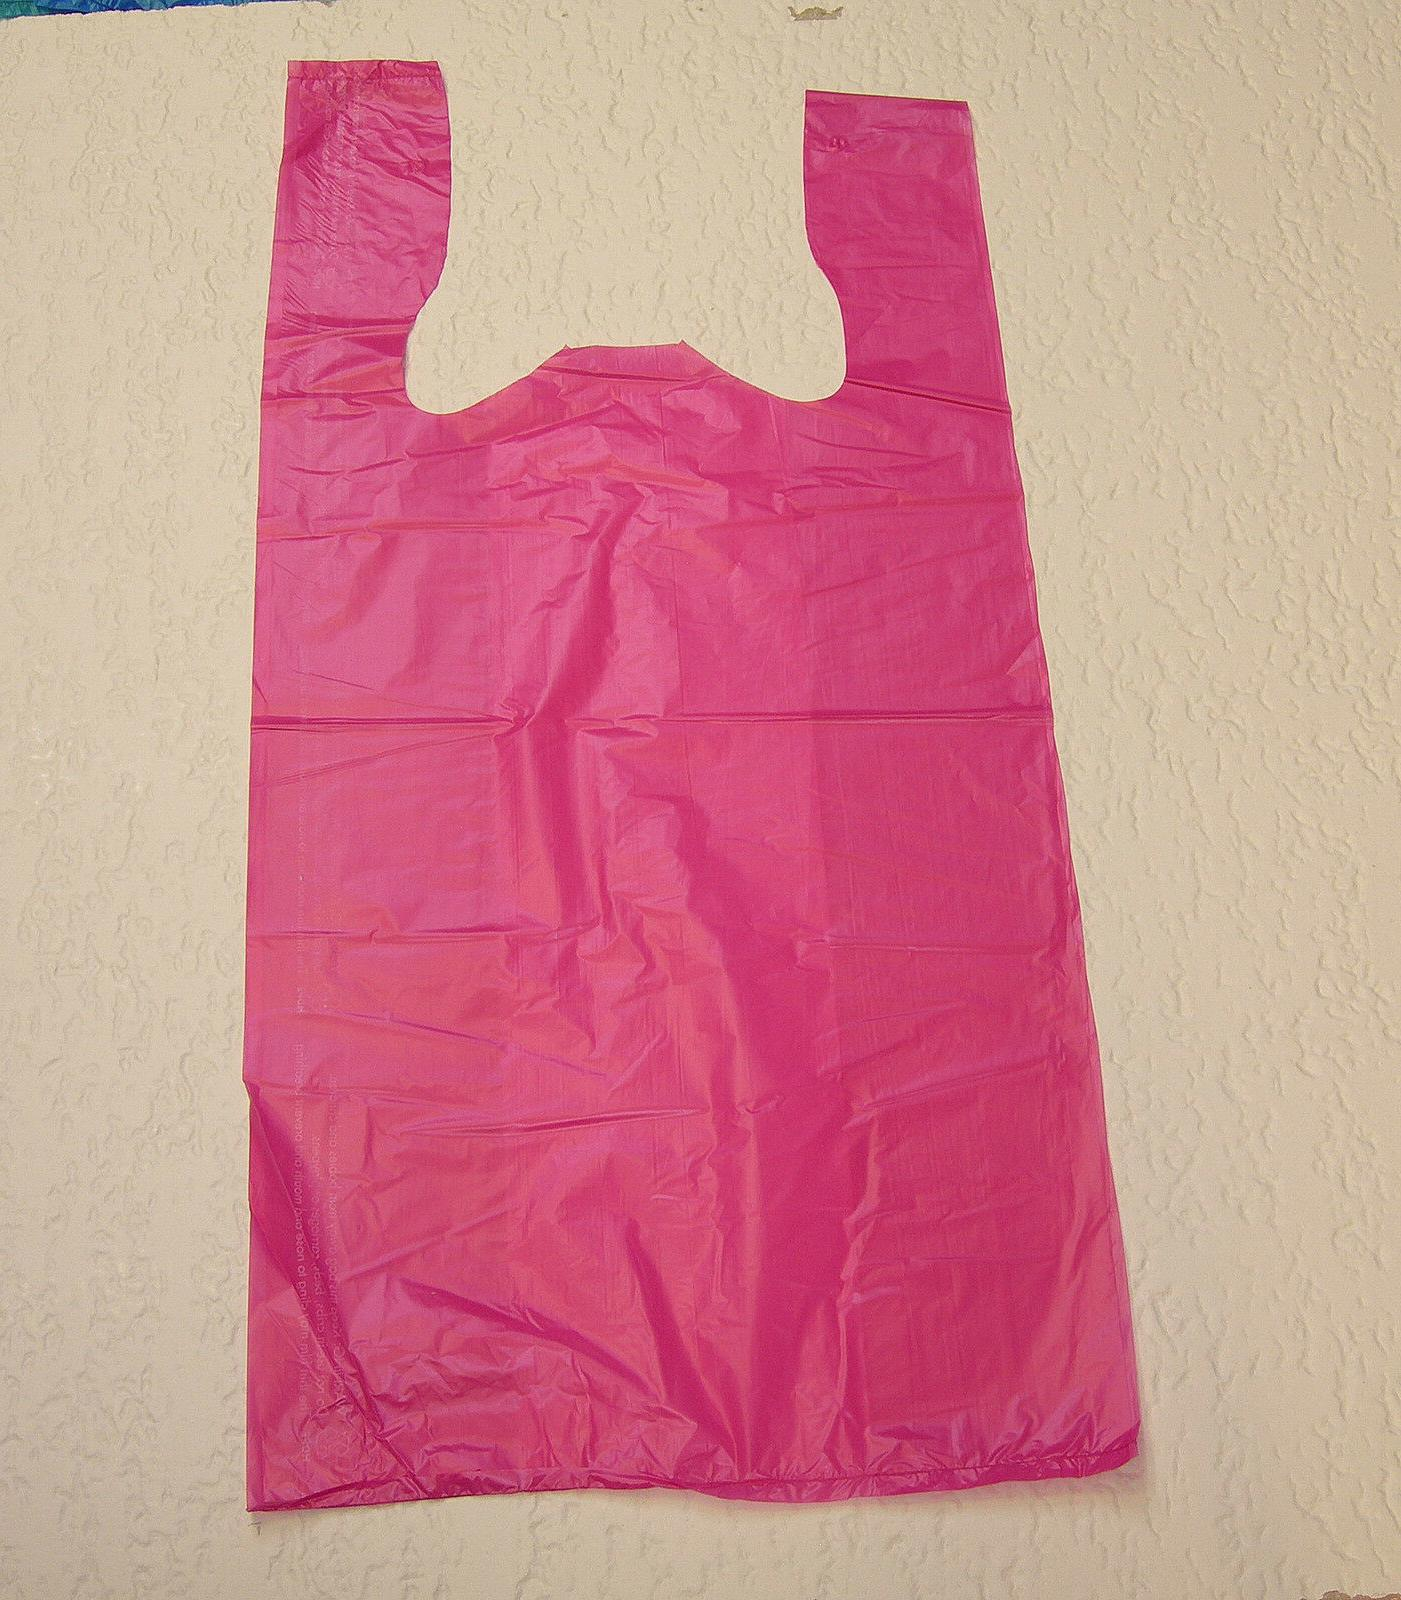 plastic t shirt bags with handles you